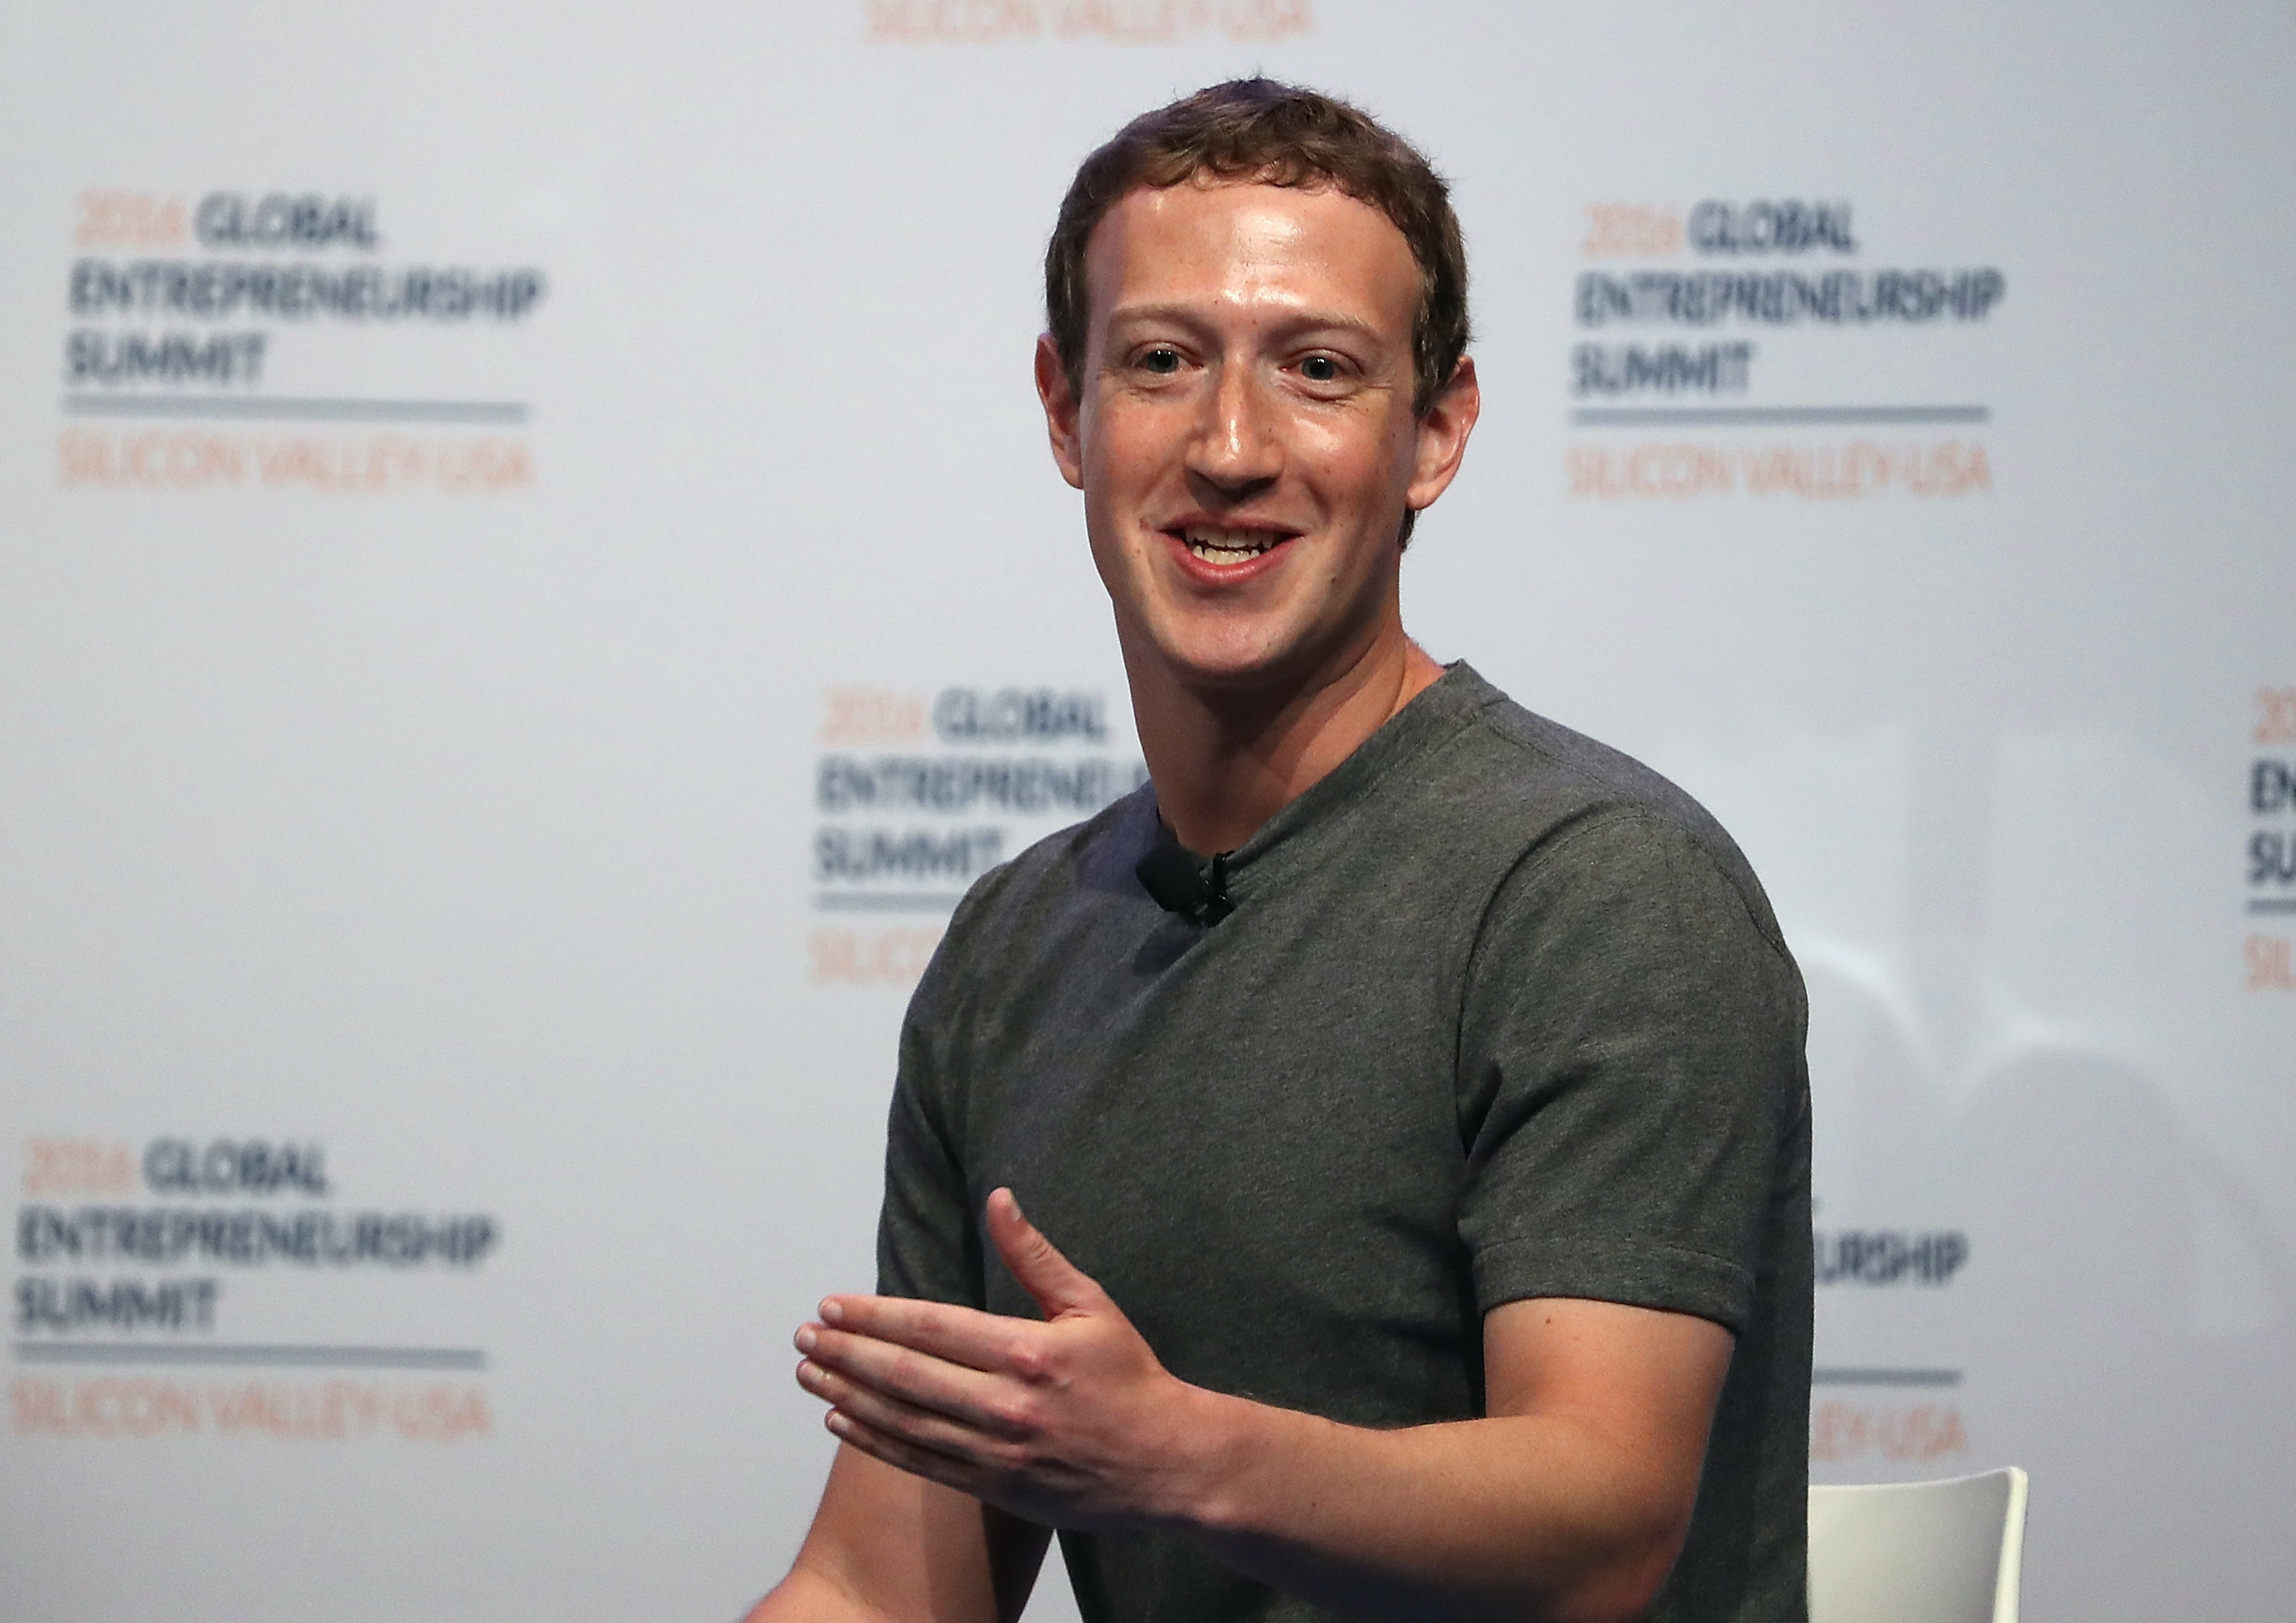 Zuckerberg has been working on the project for the past year.